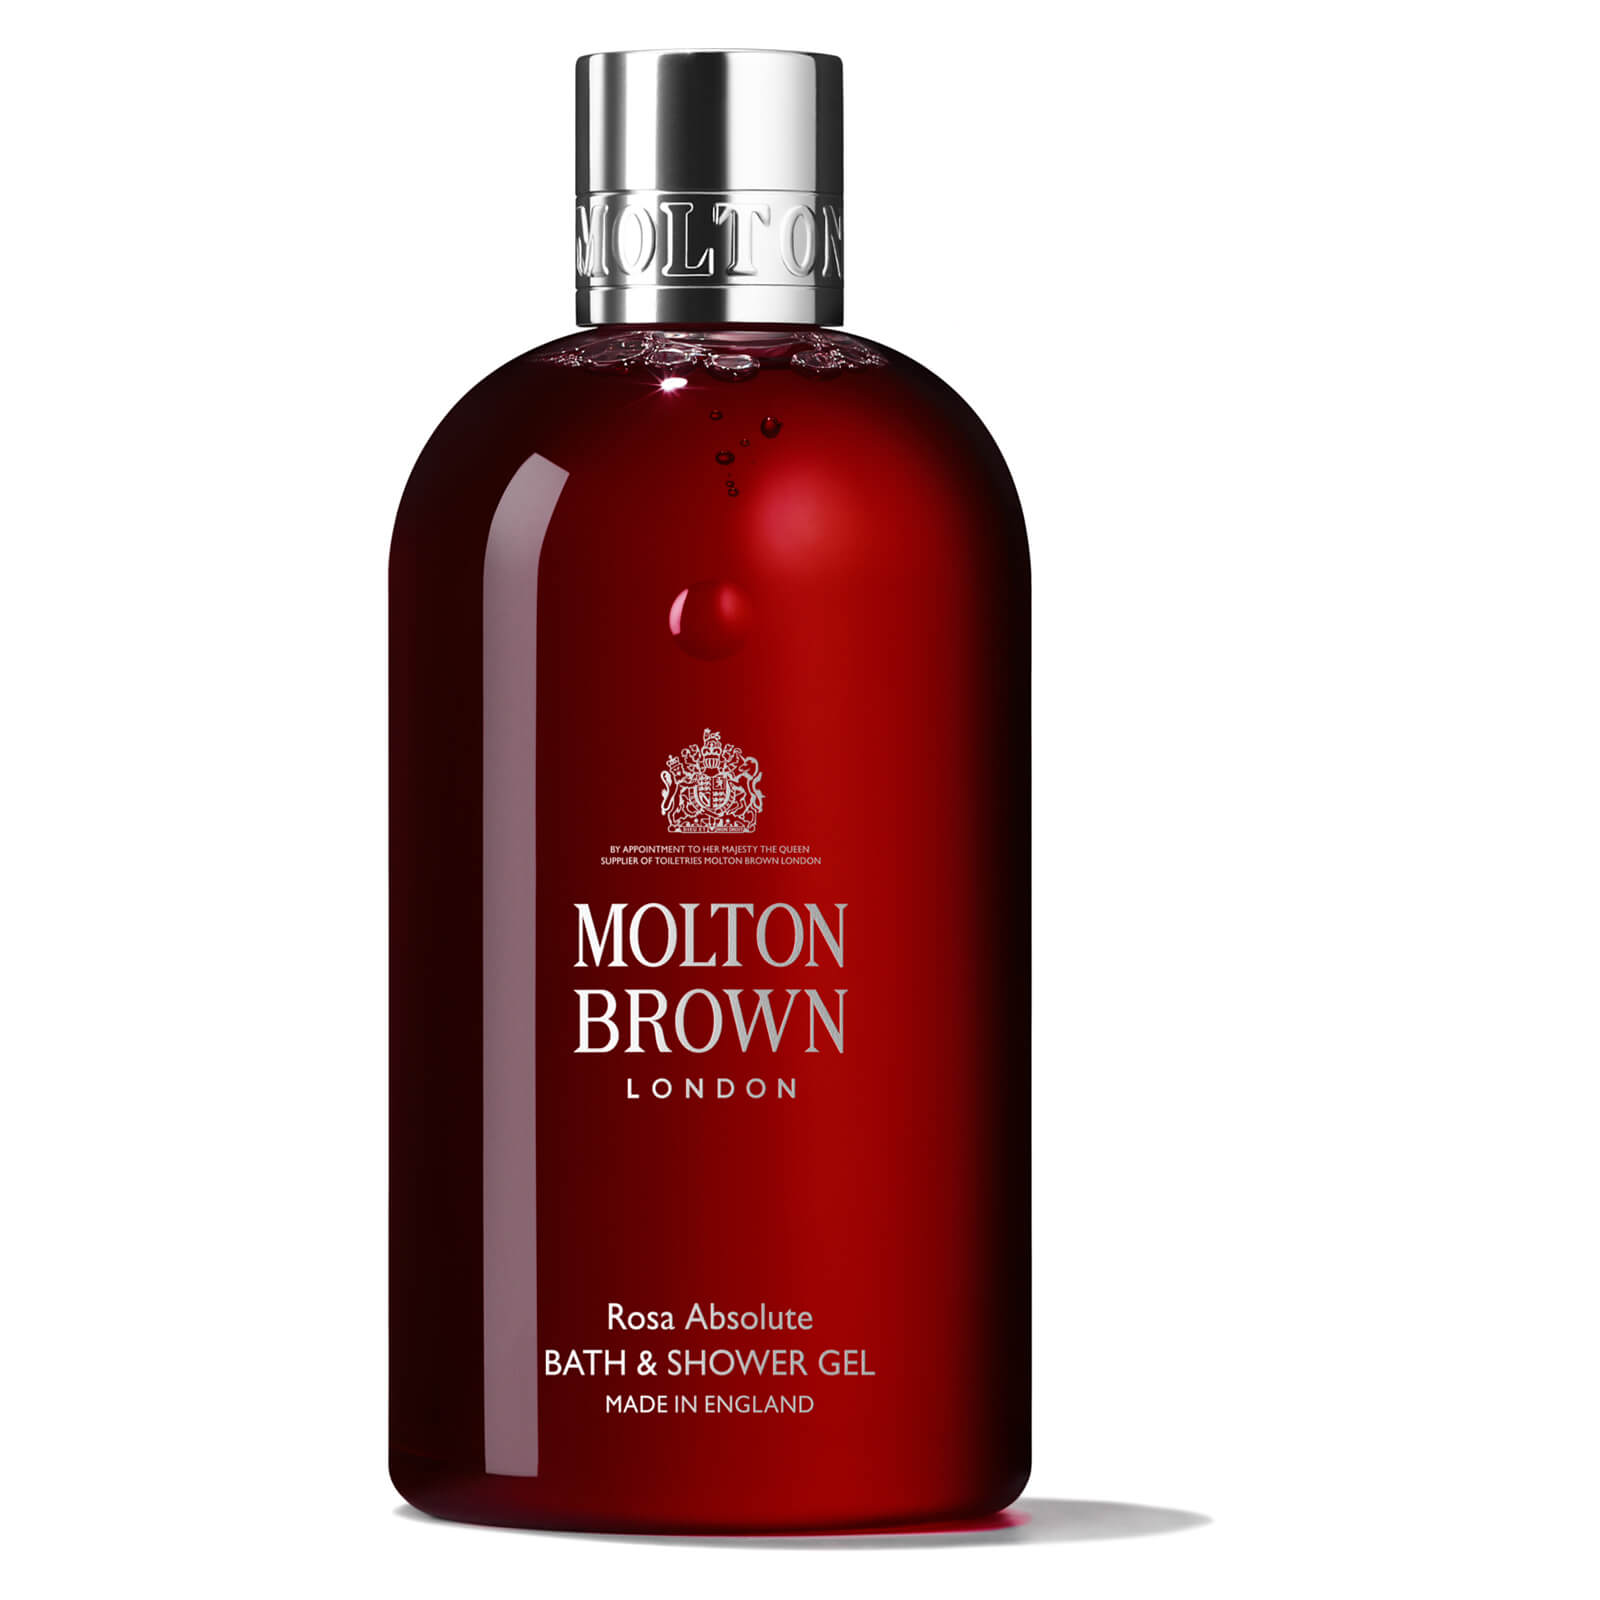 Molton Brown 摩顿布朗 玫瑰沐浴露 300ml